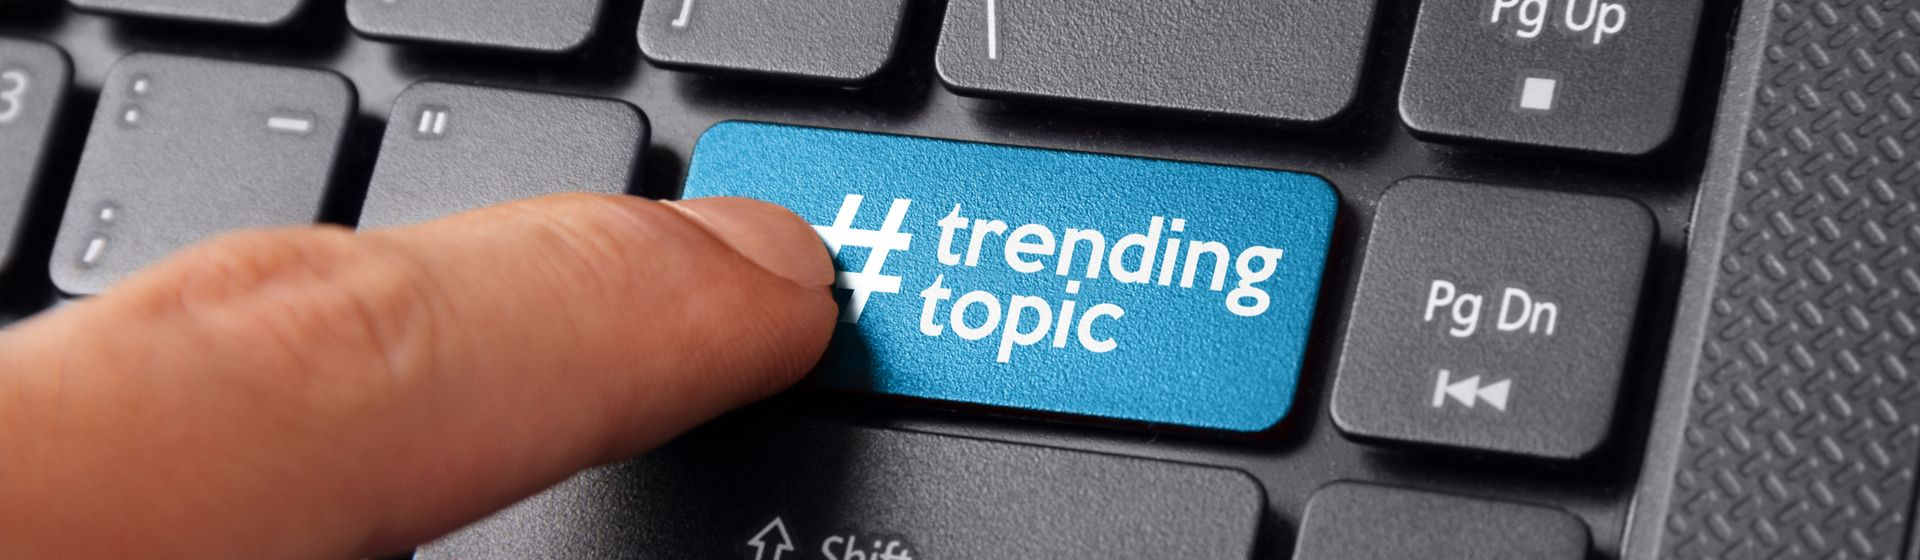 Trending Topics do Twitter: o que são e como visualizar